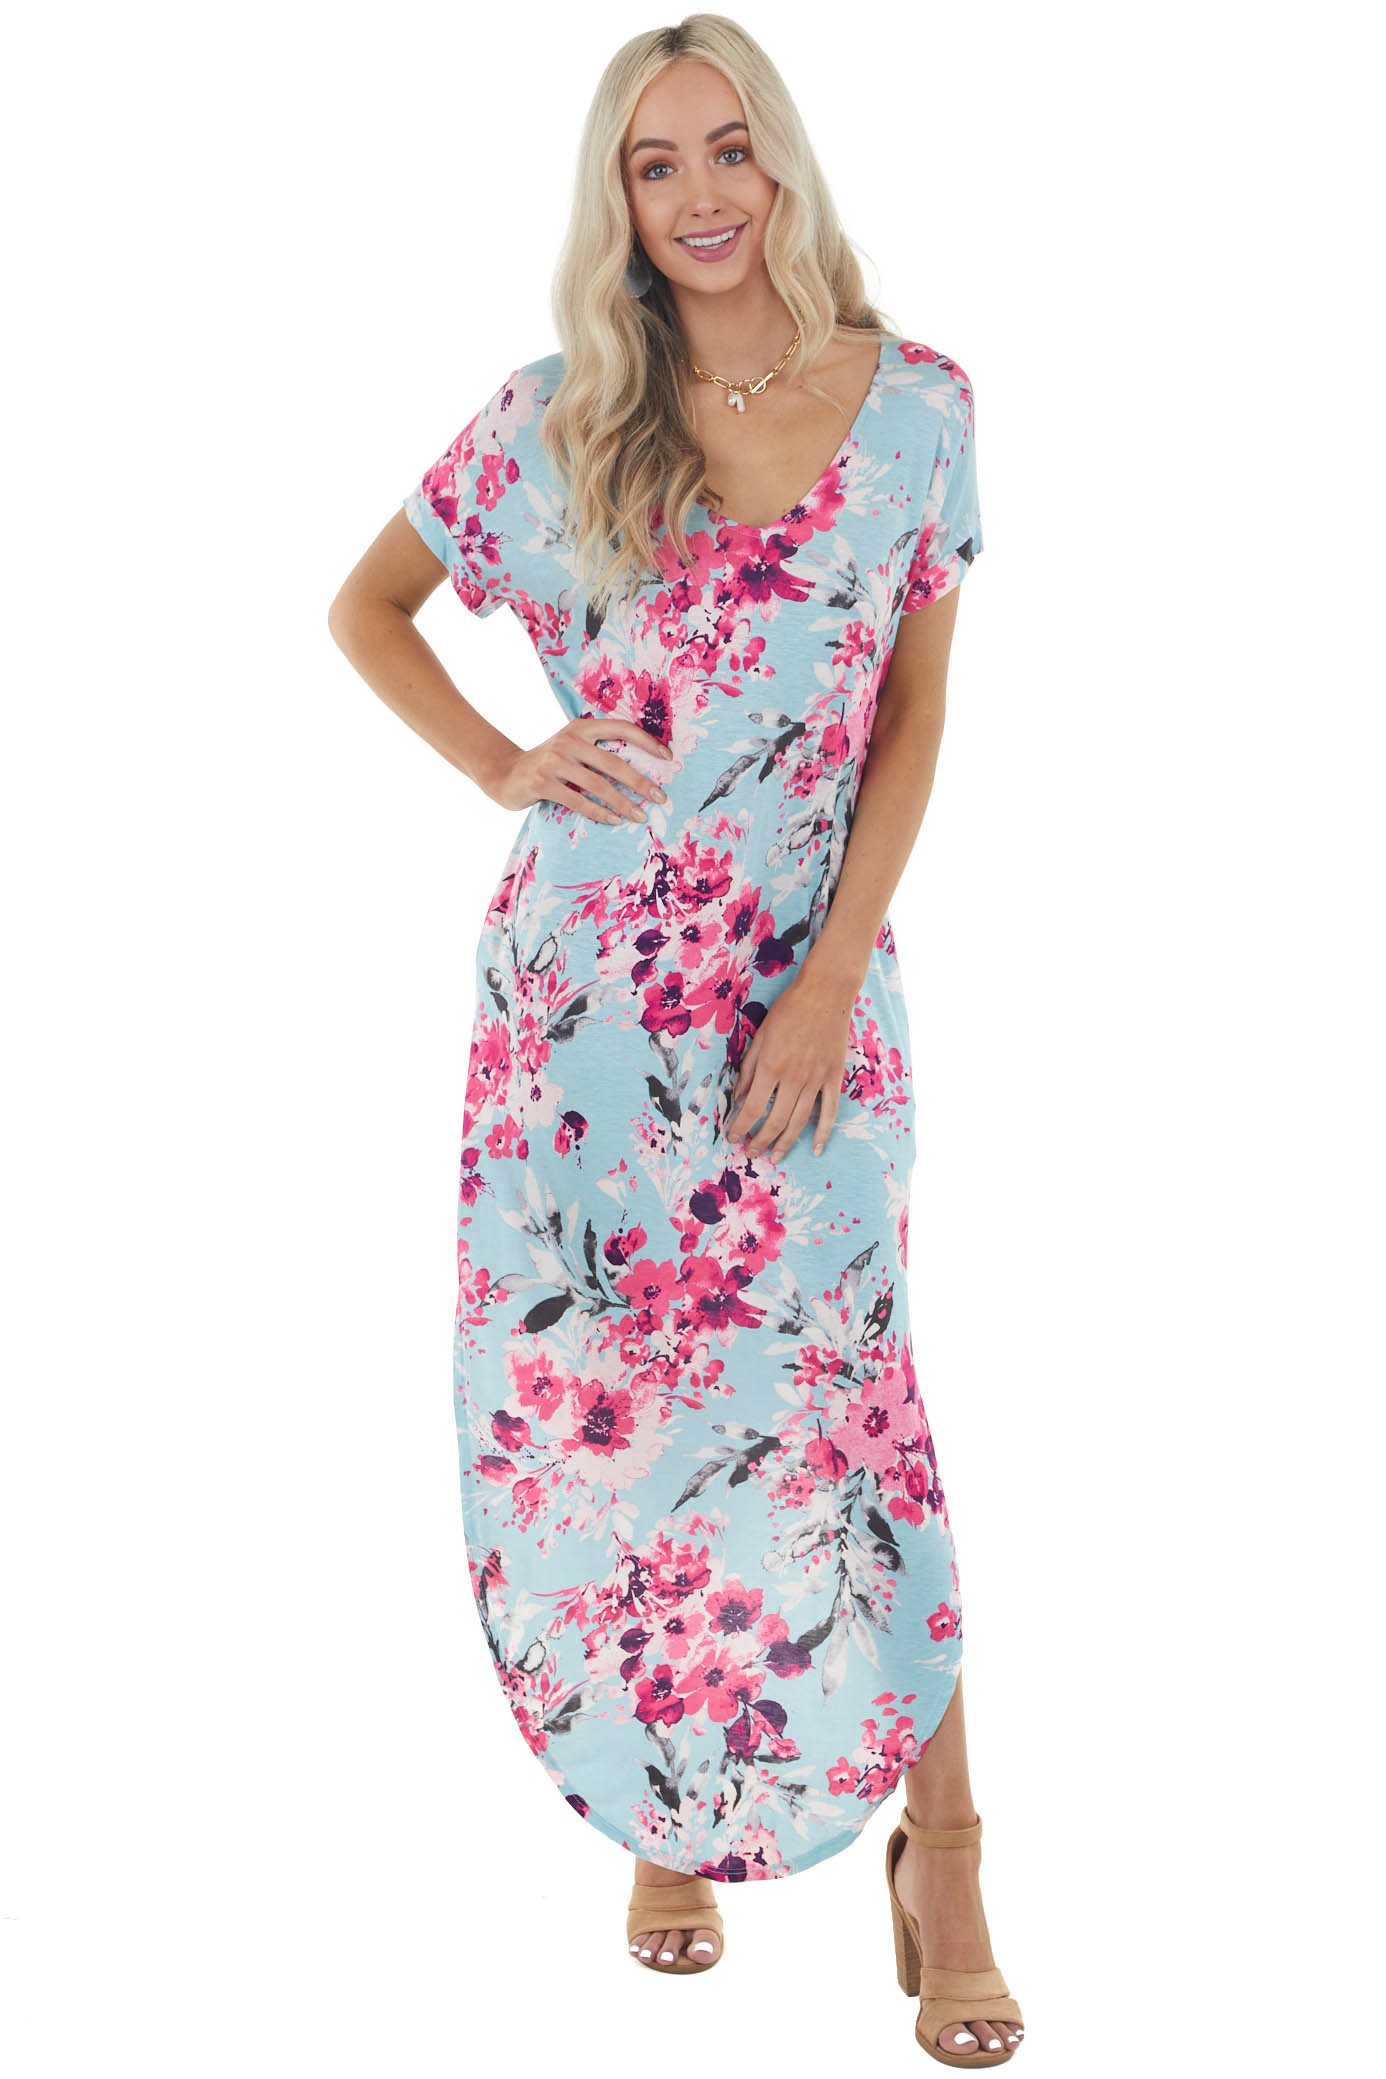 Baby Blue Floral Print Short Sleeve Maxi Dress with Pocket